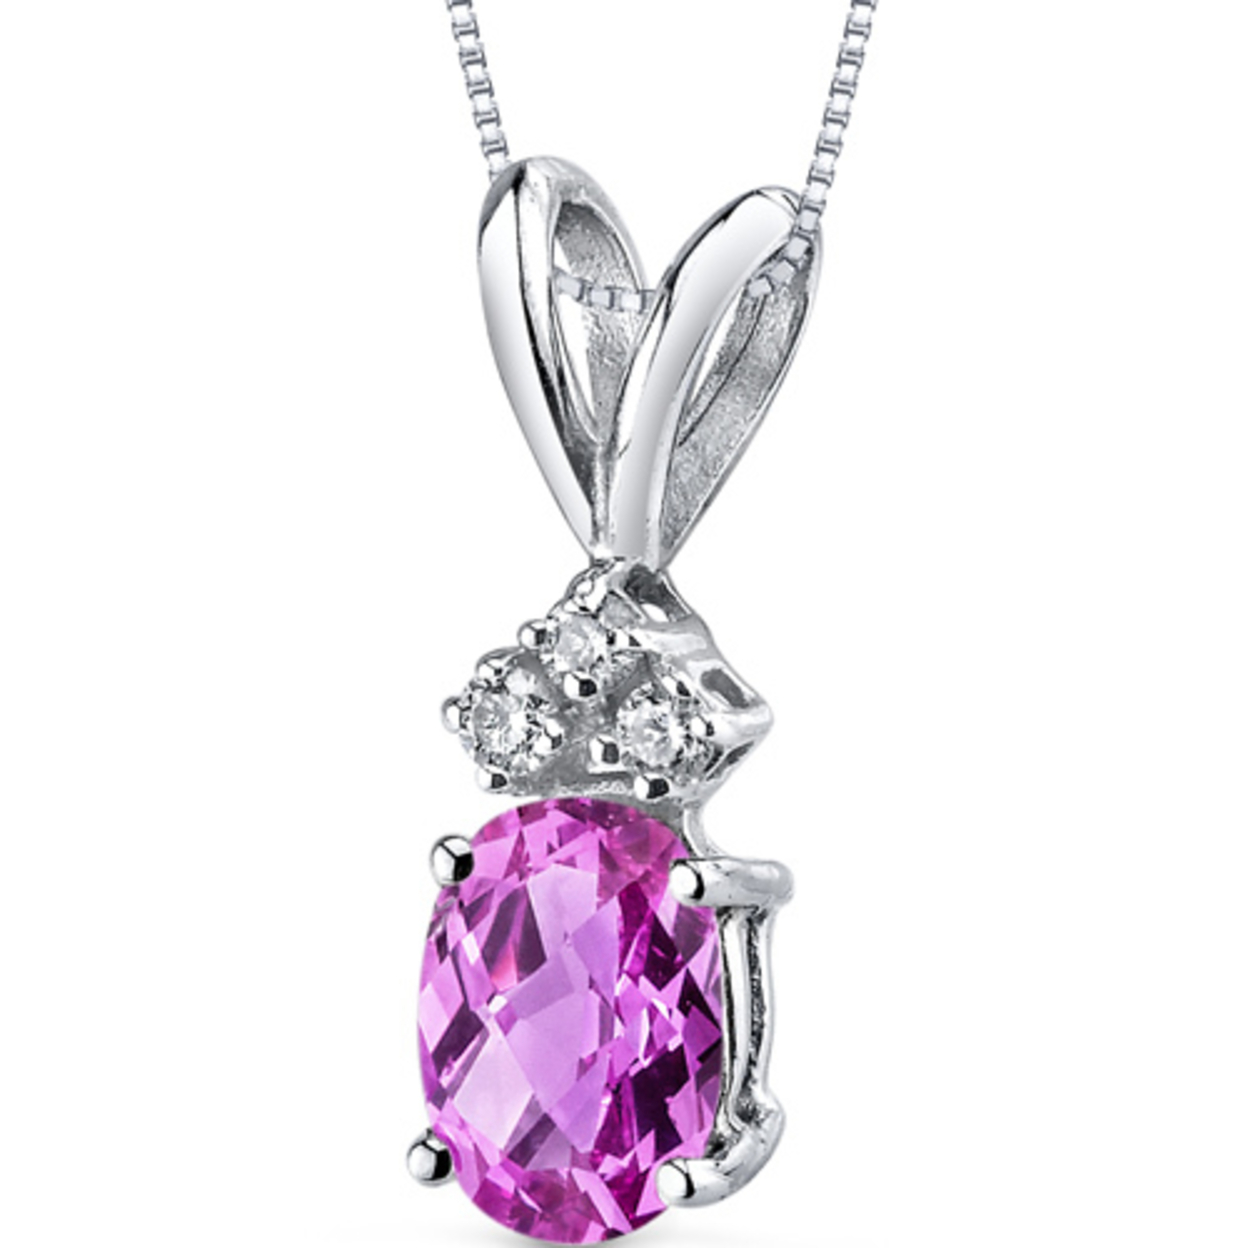 14 Karat White Gold Oval Shape 1.00 Carats Created Pink Sapphire Diamond Pendant